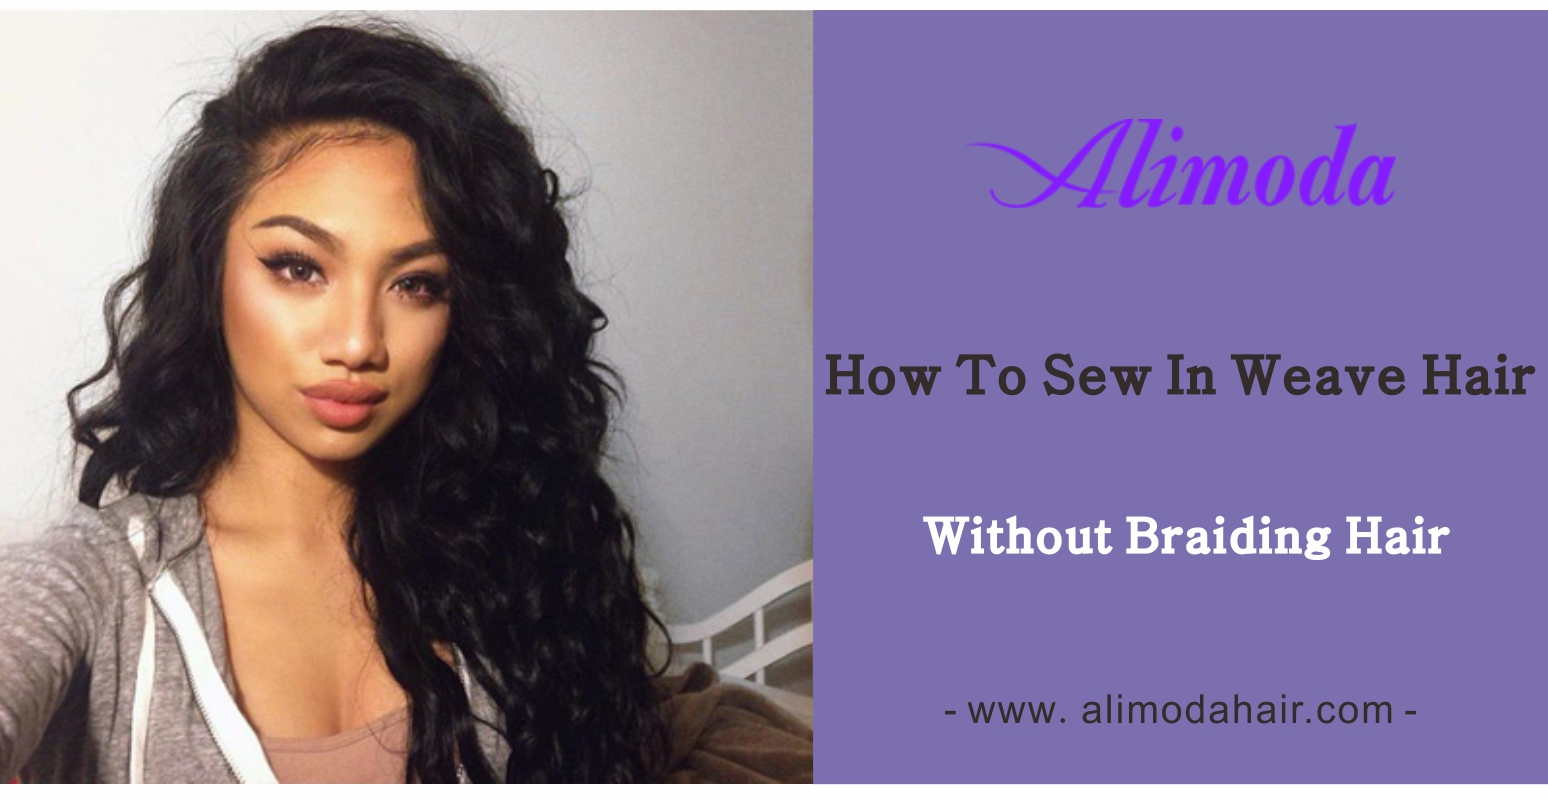 How to sew in weave hair without braiding hair